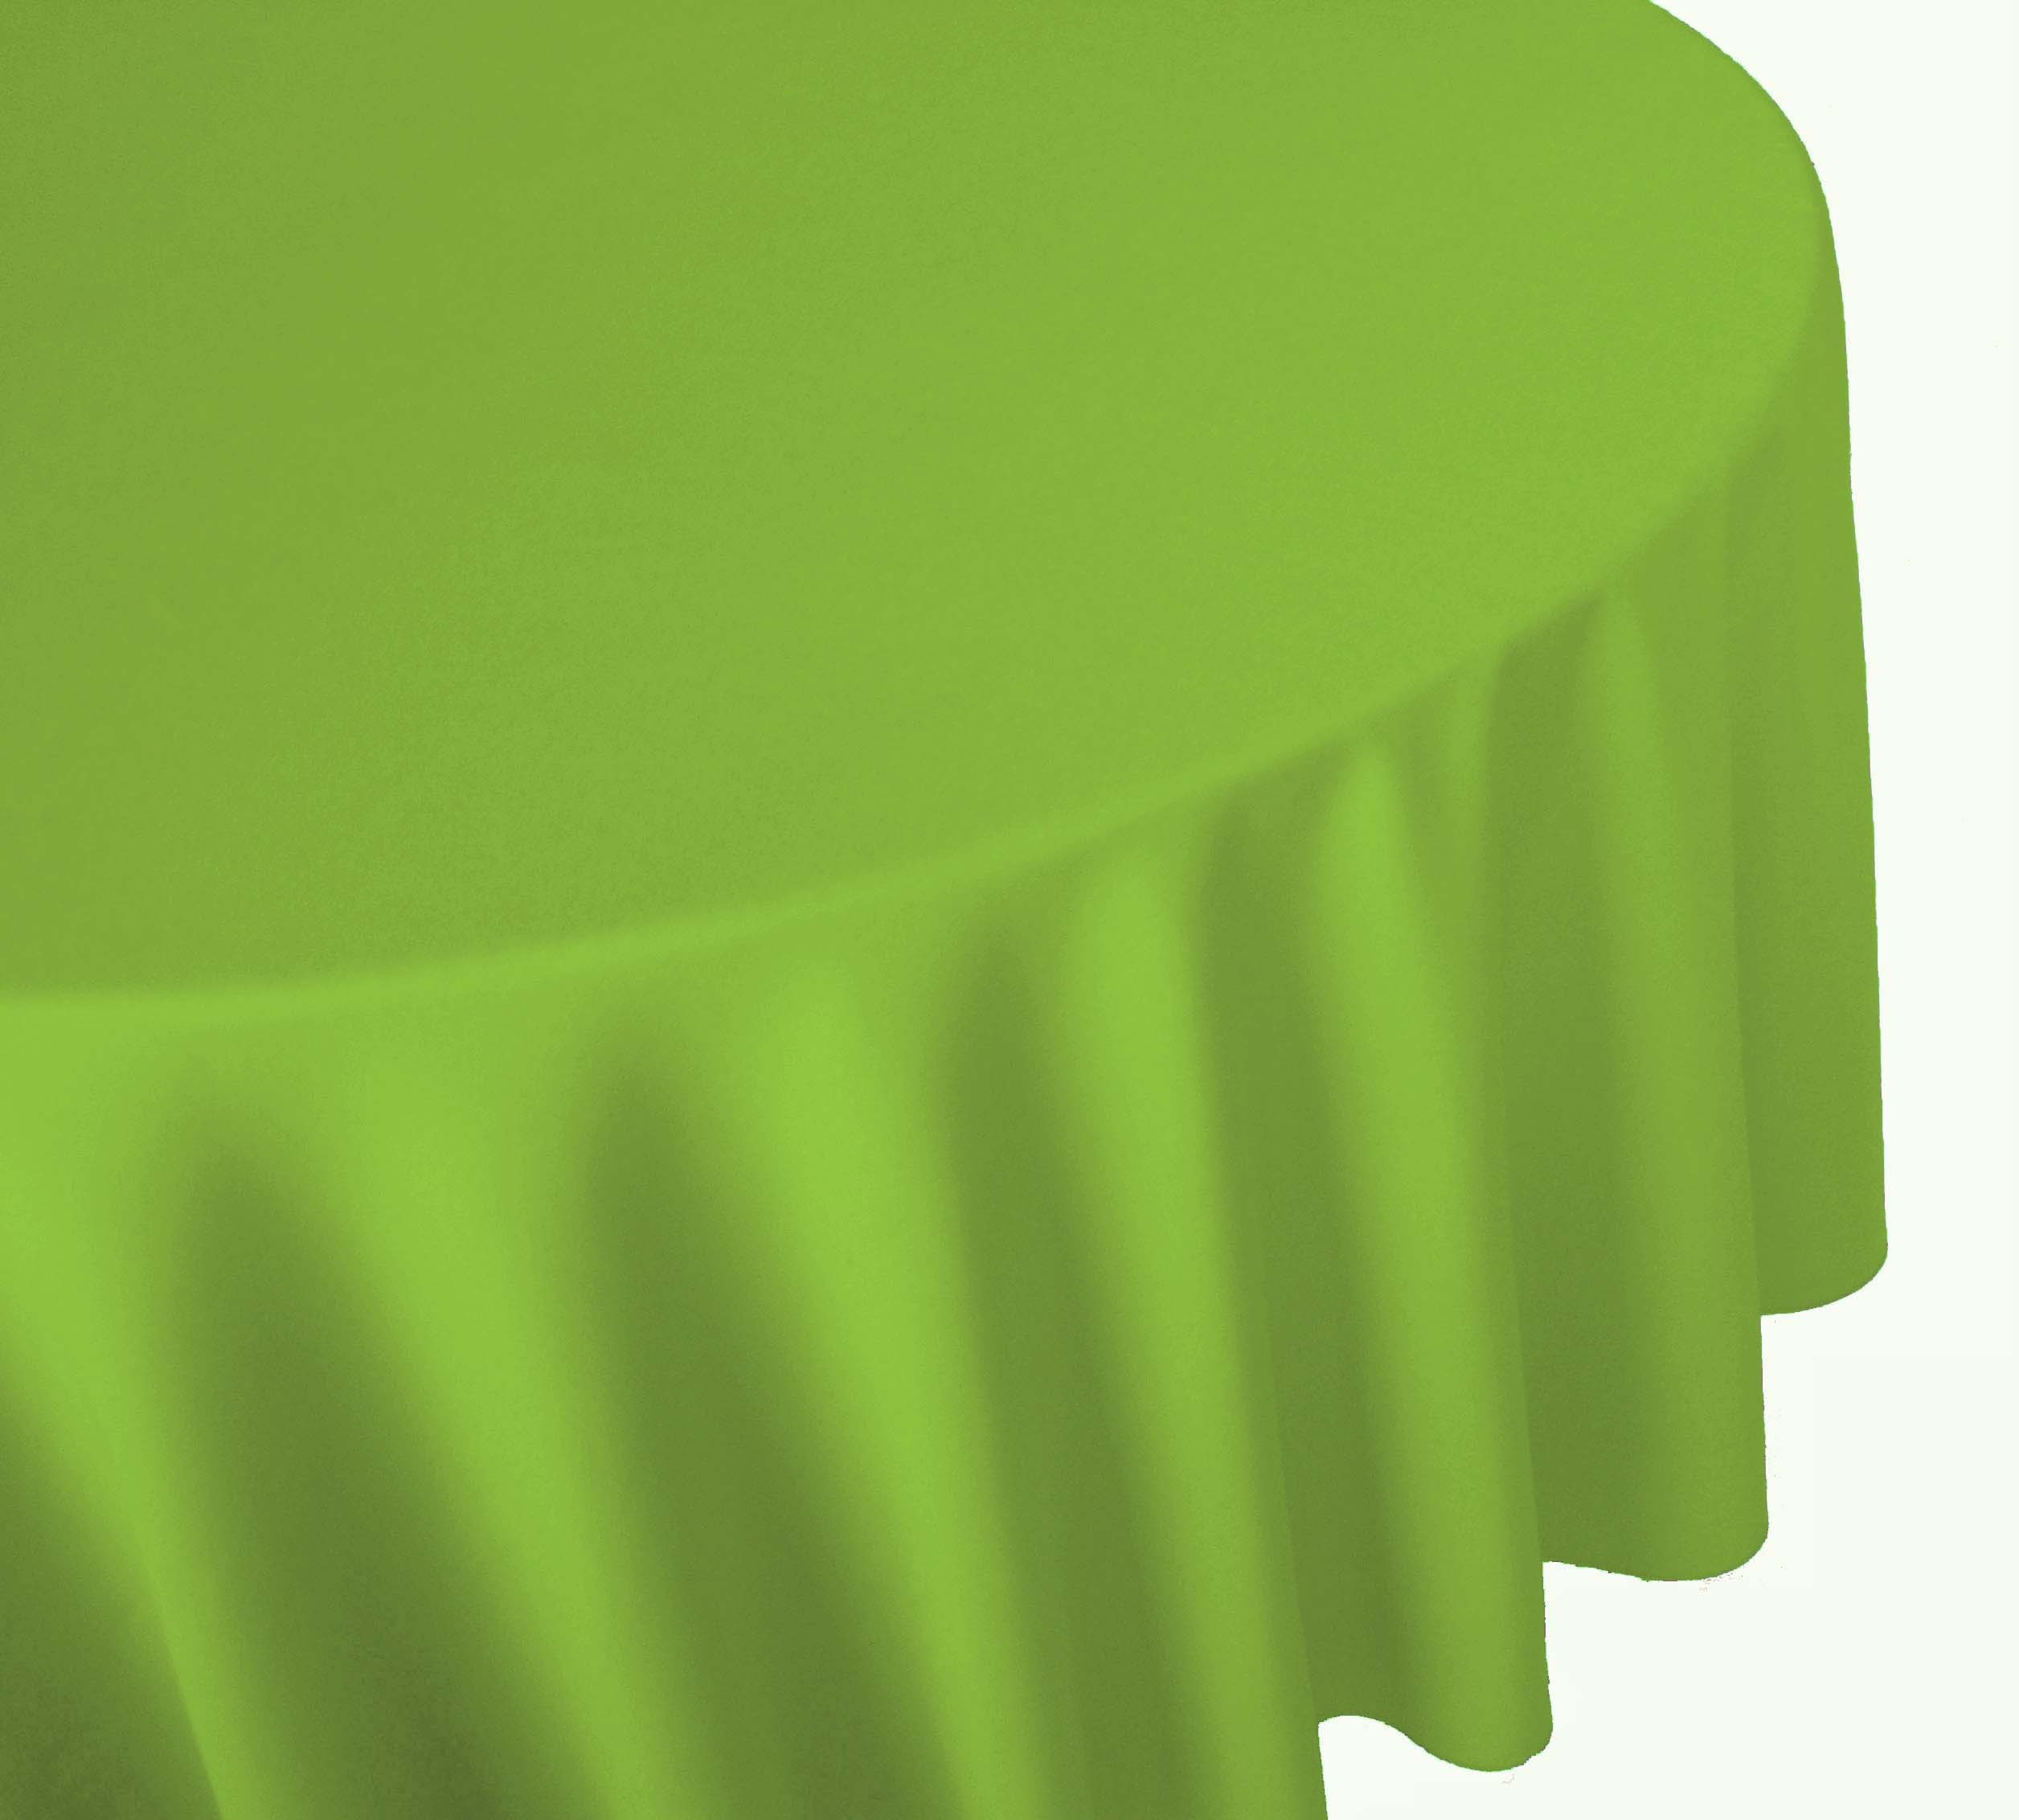 Lime Green Linen Table Cover Cloth Banquet Round